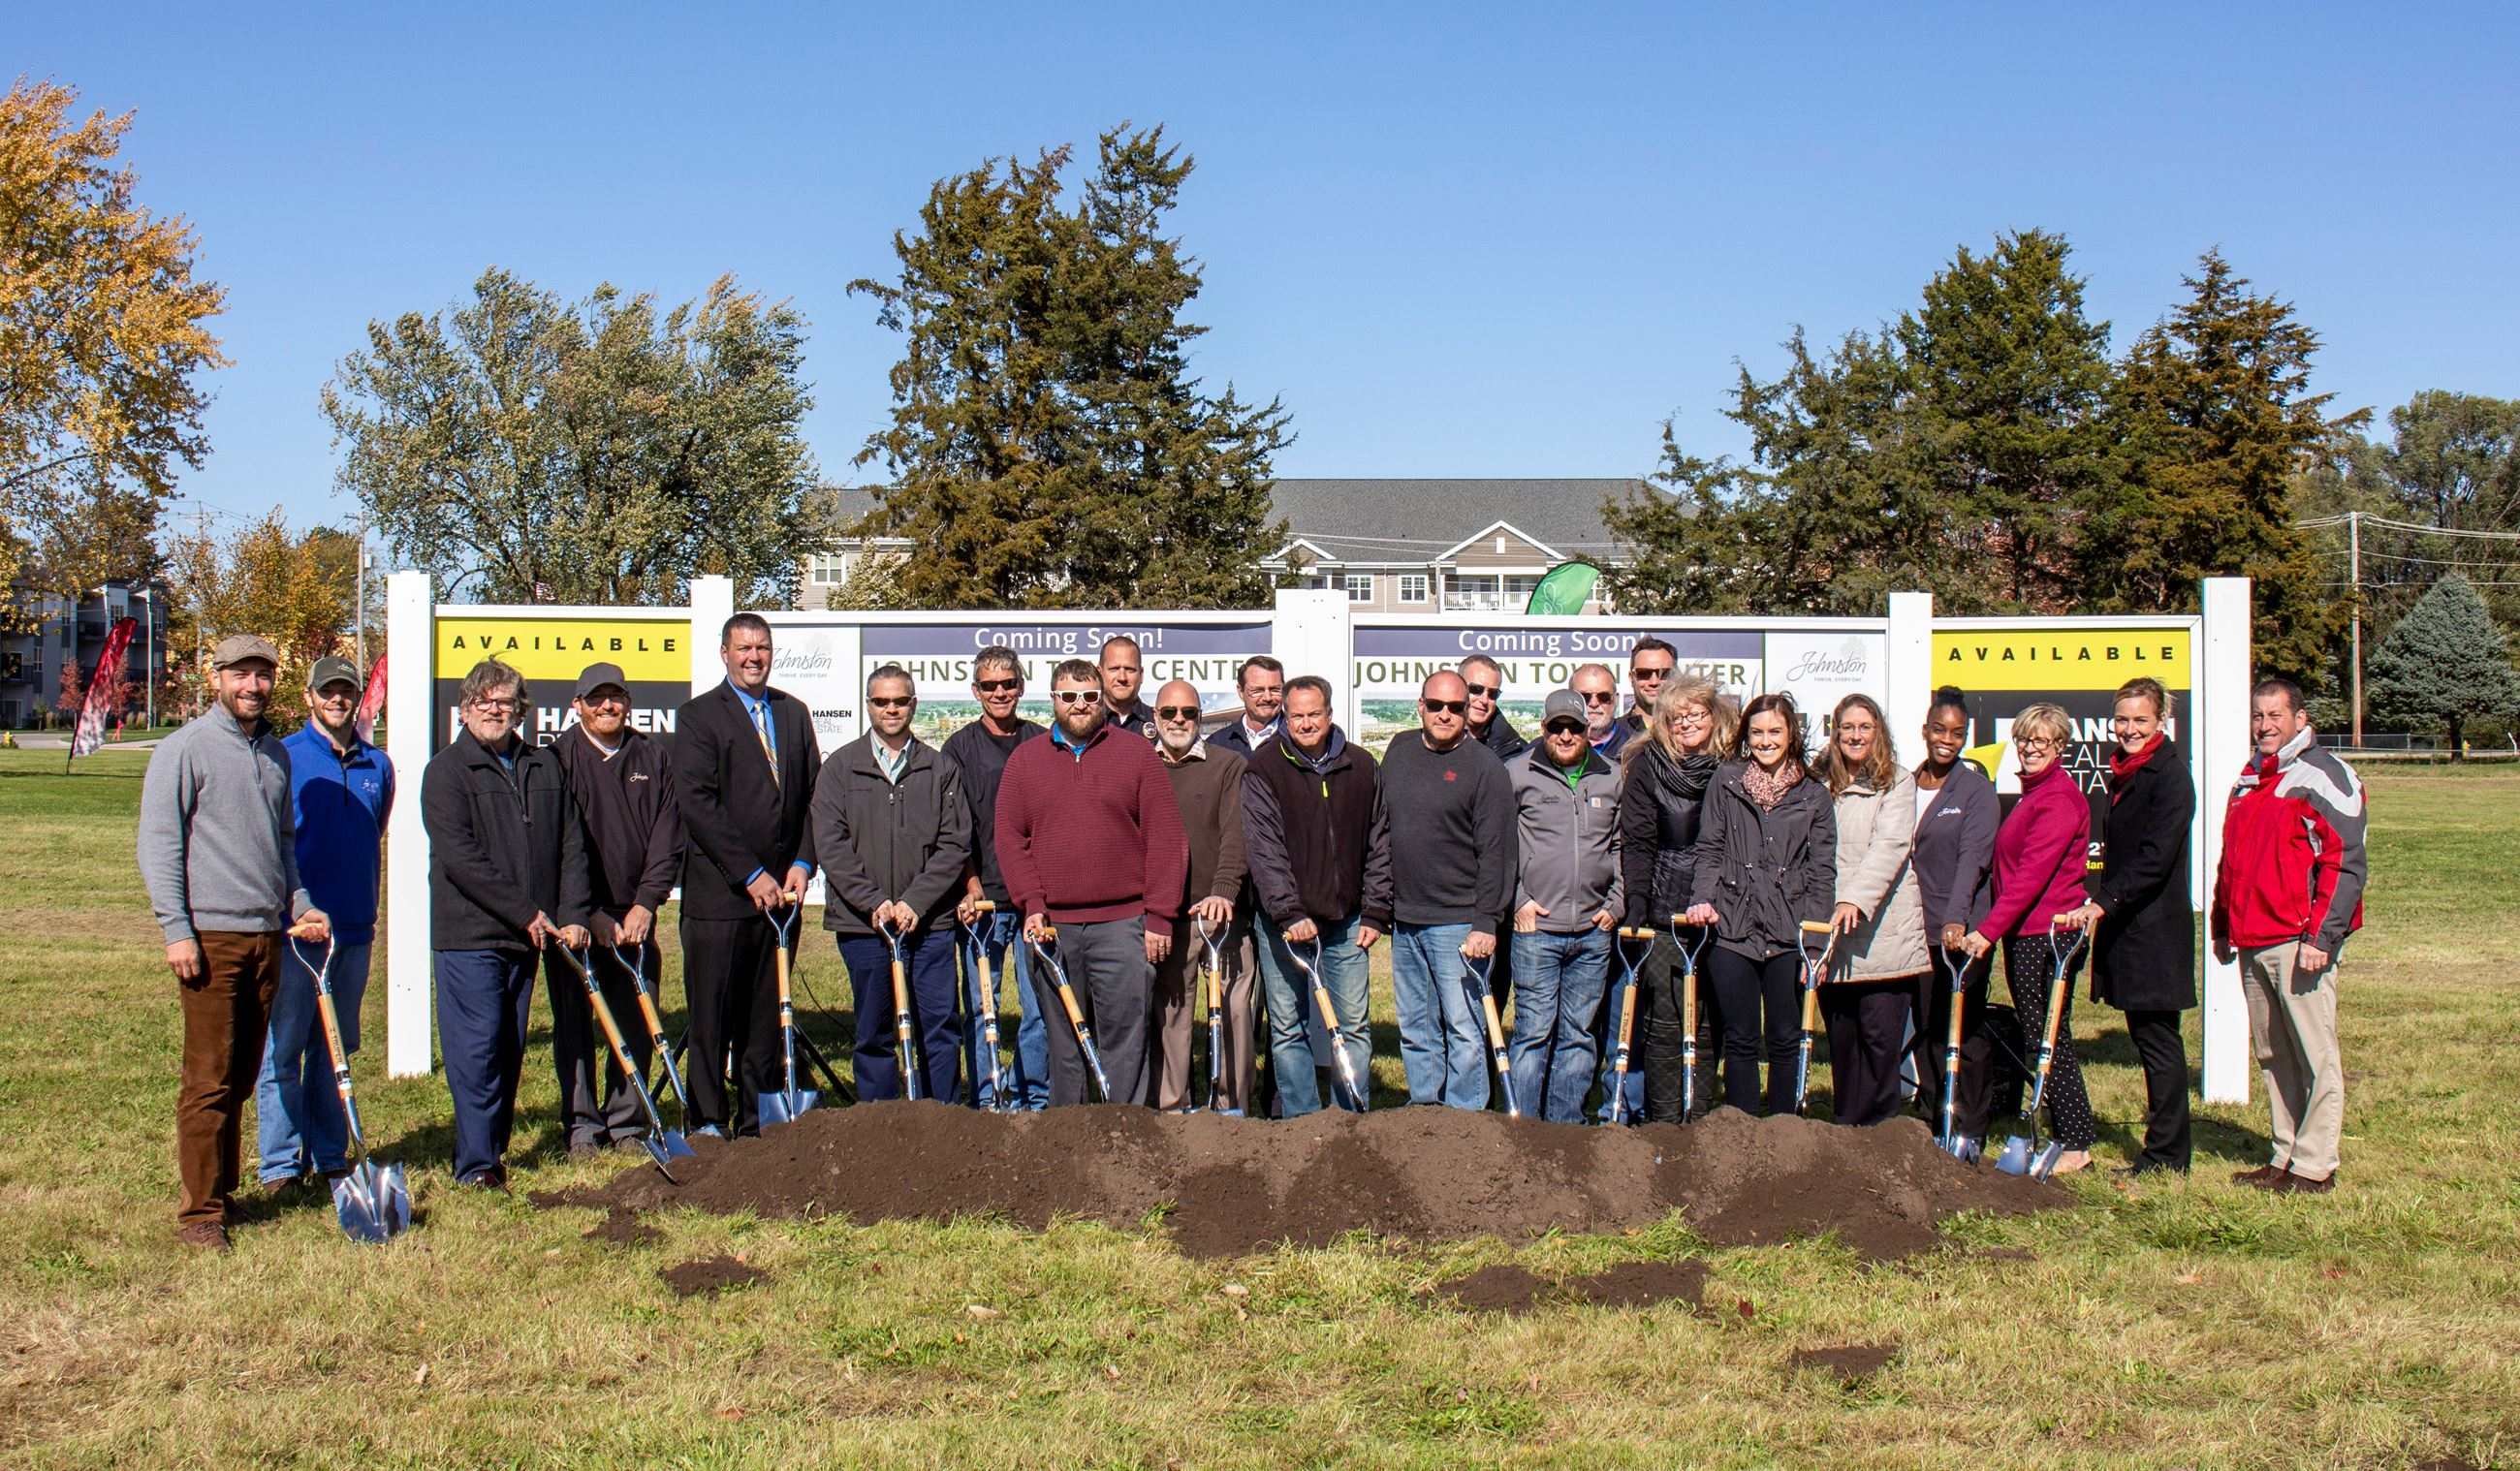 4. Johnston Town Center Groundbreaking_Oct. 2019